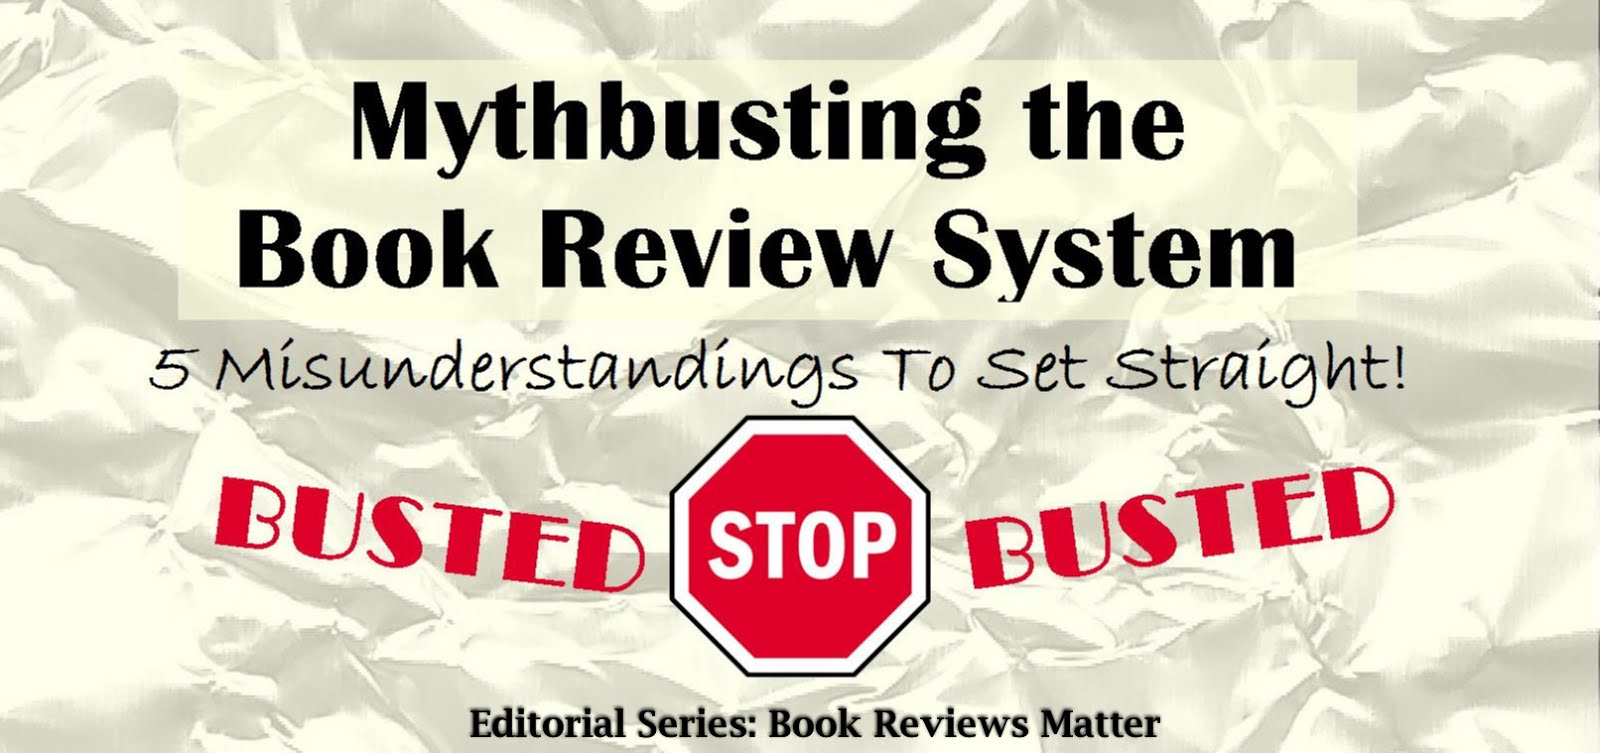 Mythbusting the Book Review System